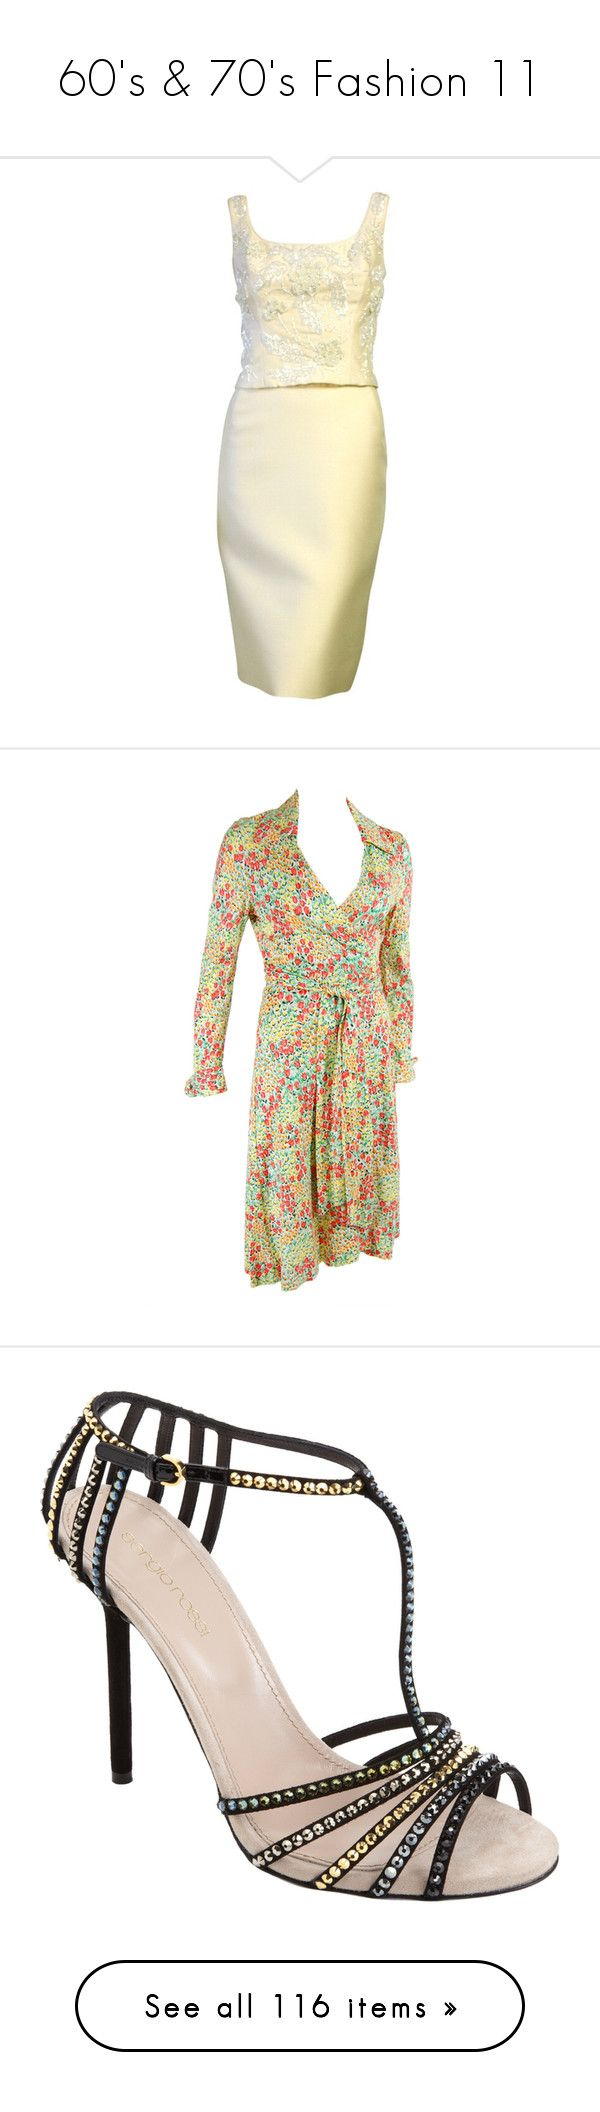 """""""60's & 70's Fashion 11"""" by jeanice09 ❤ liked on Polyvore featuring dresses, beading dress, beige dress, beaded dress, beige cocktail dress, beaded cocktail dress, diane von furstenberg, tulip wrap dress, tulip dress and wrap dress"""